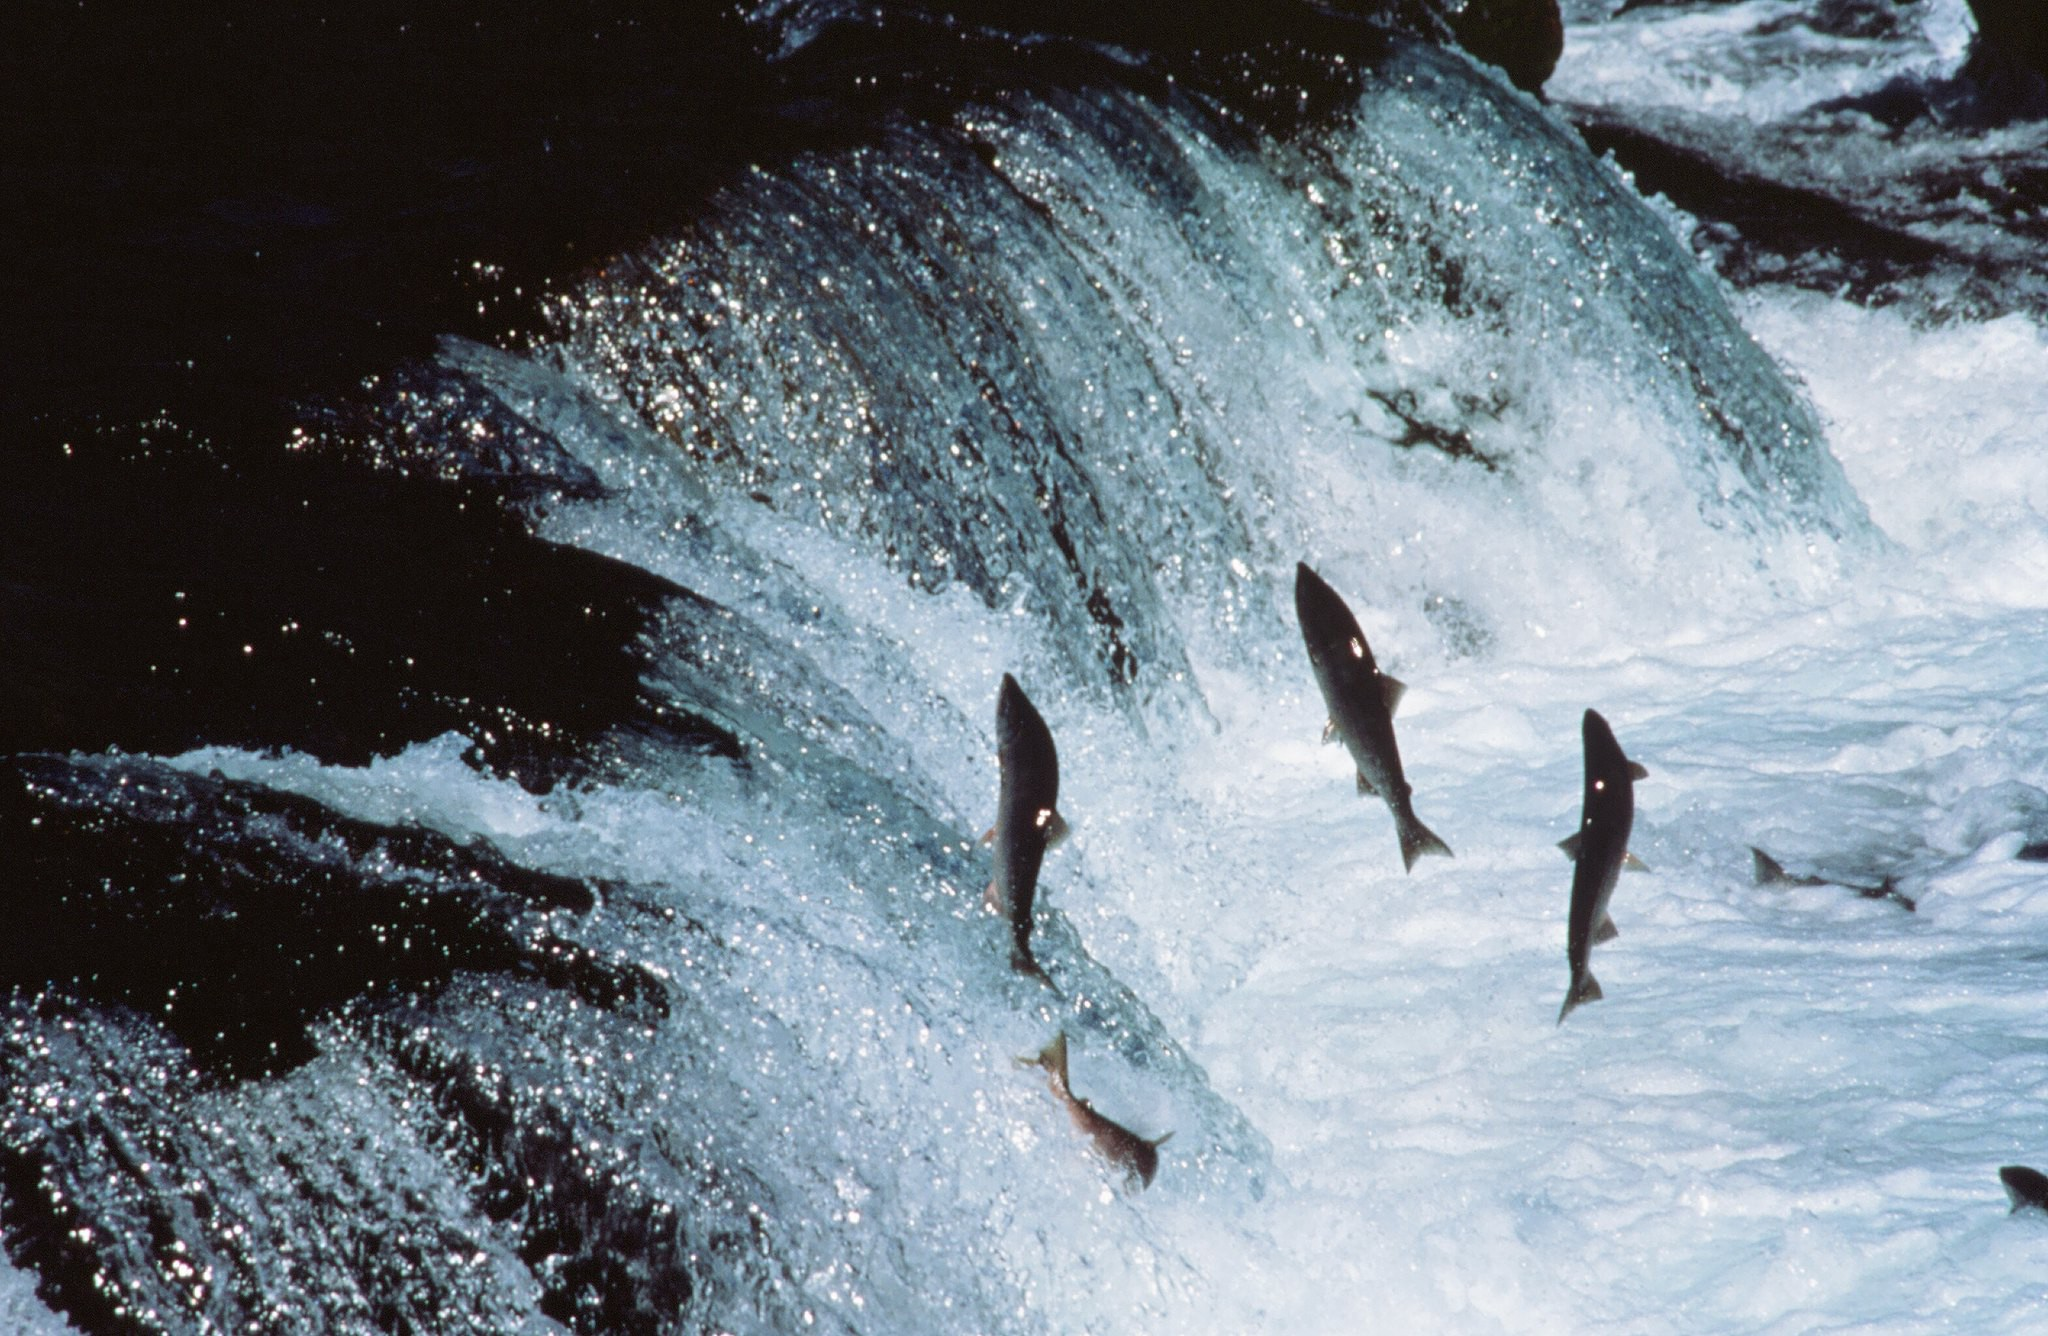 Adult Sockeye Salmon encounter a waterfall on their way up-river to spawn.